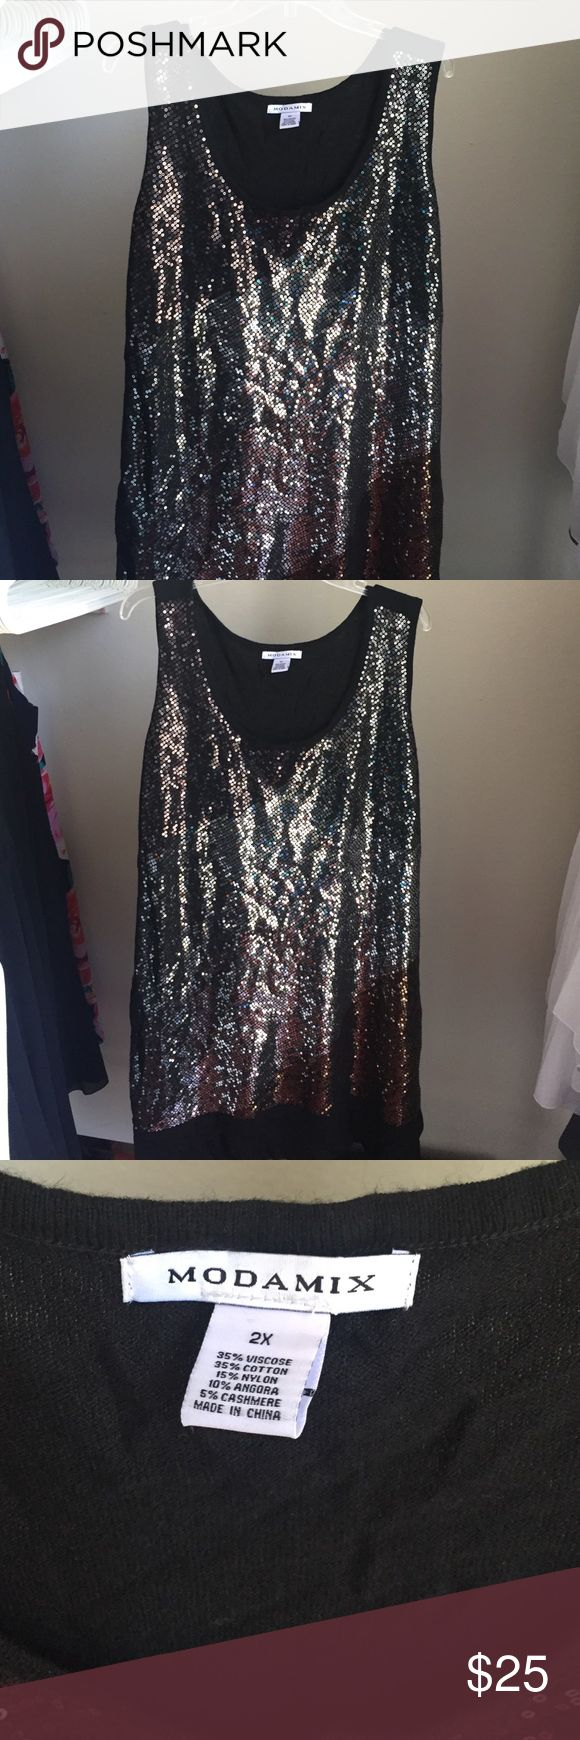 Modamix sequin sleeveless sweater dress size 2x Sleeveless swester dress with sequin front size 2x worn once for shoot Dresses Midi